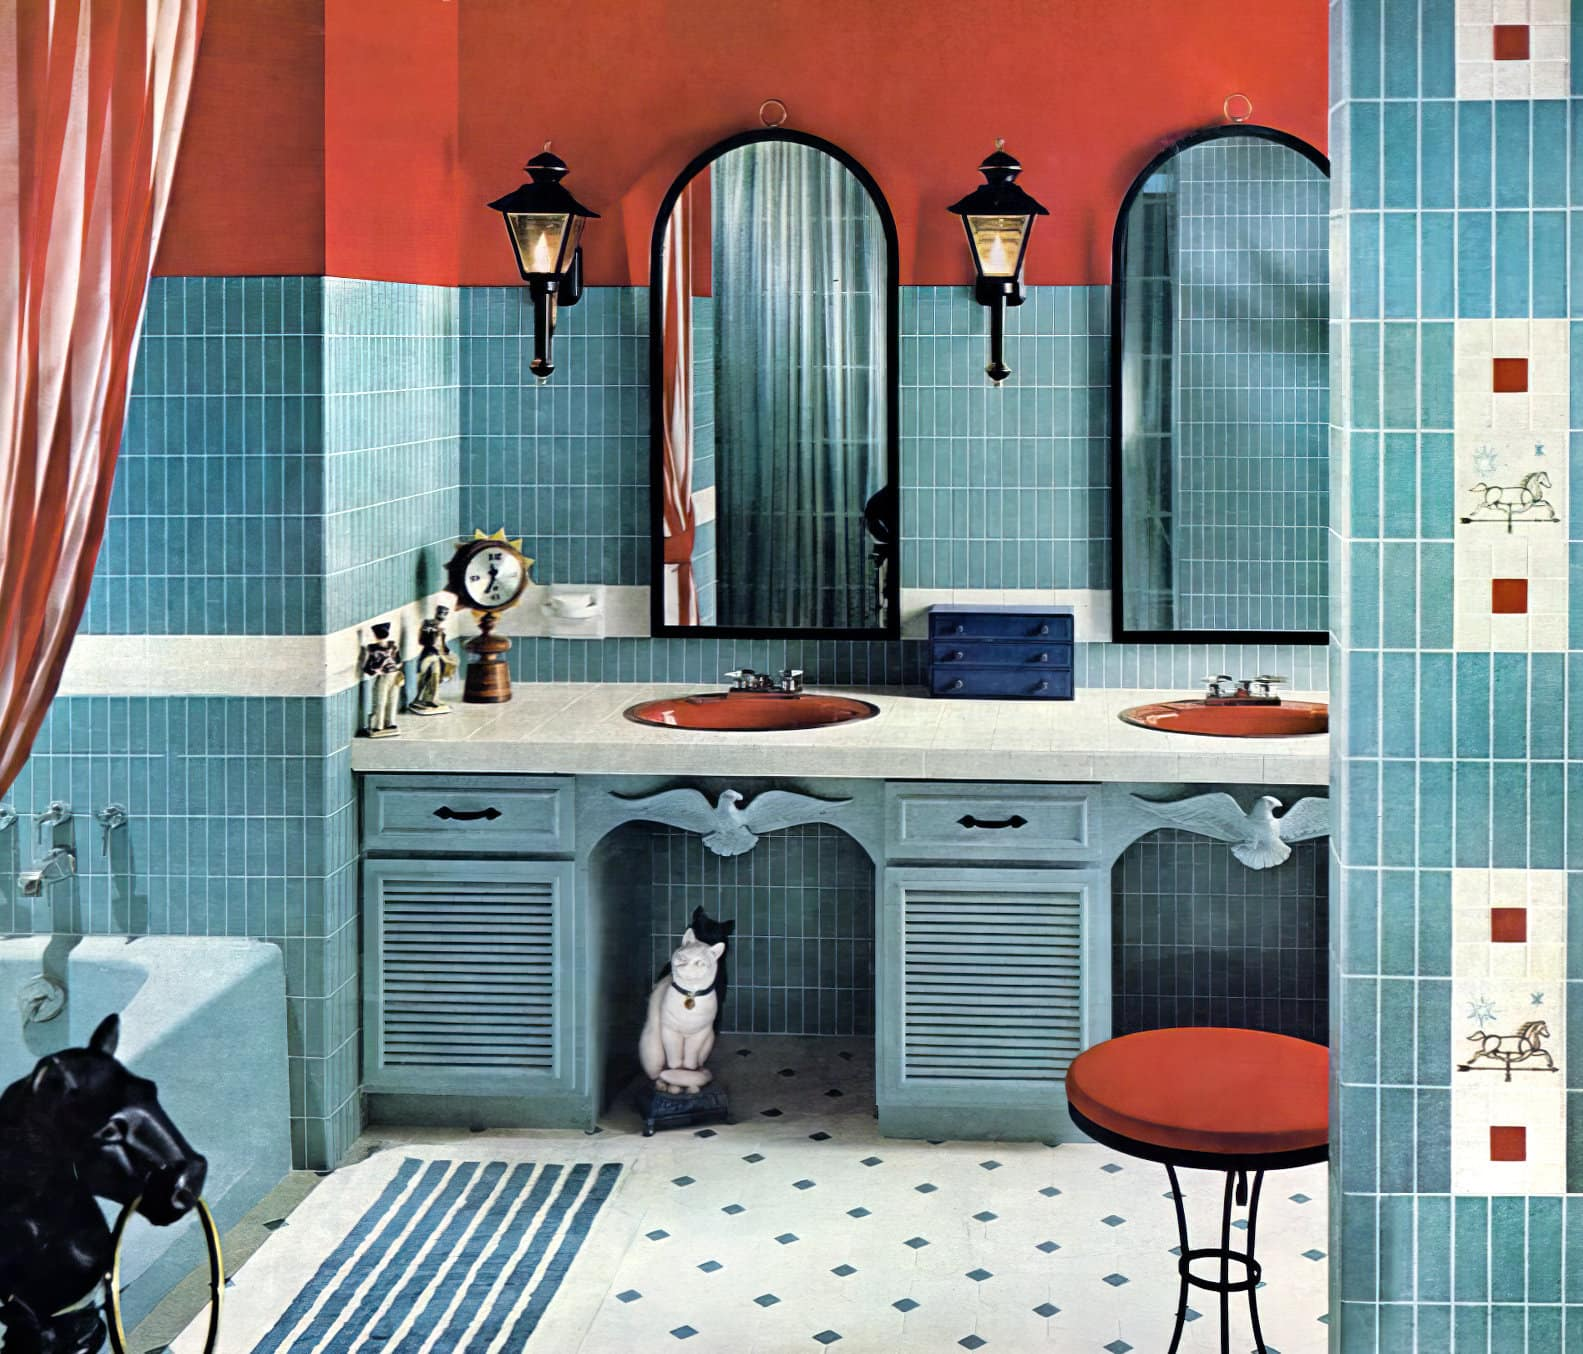 Vintage mid-century bathroom tile design with red and blue